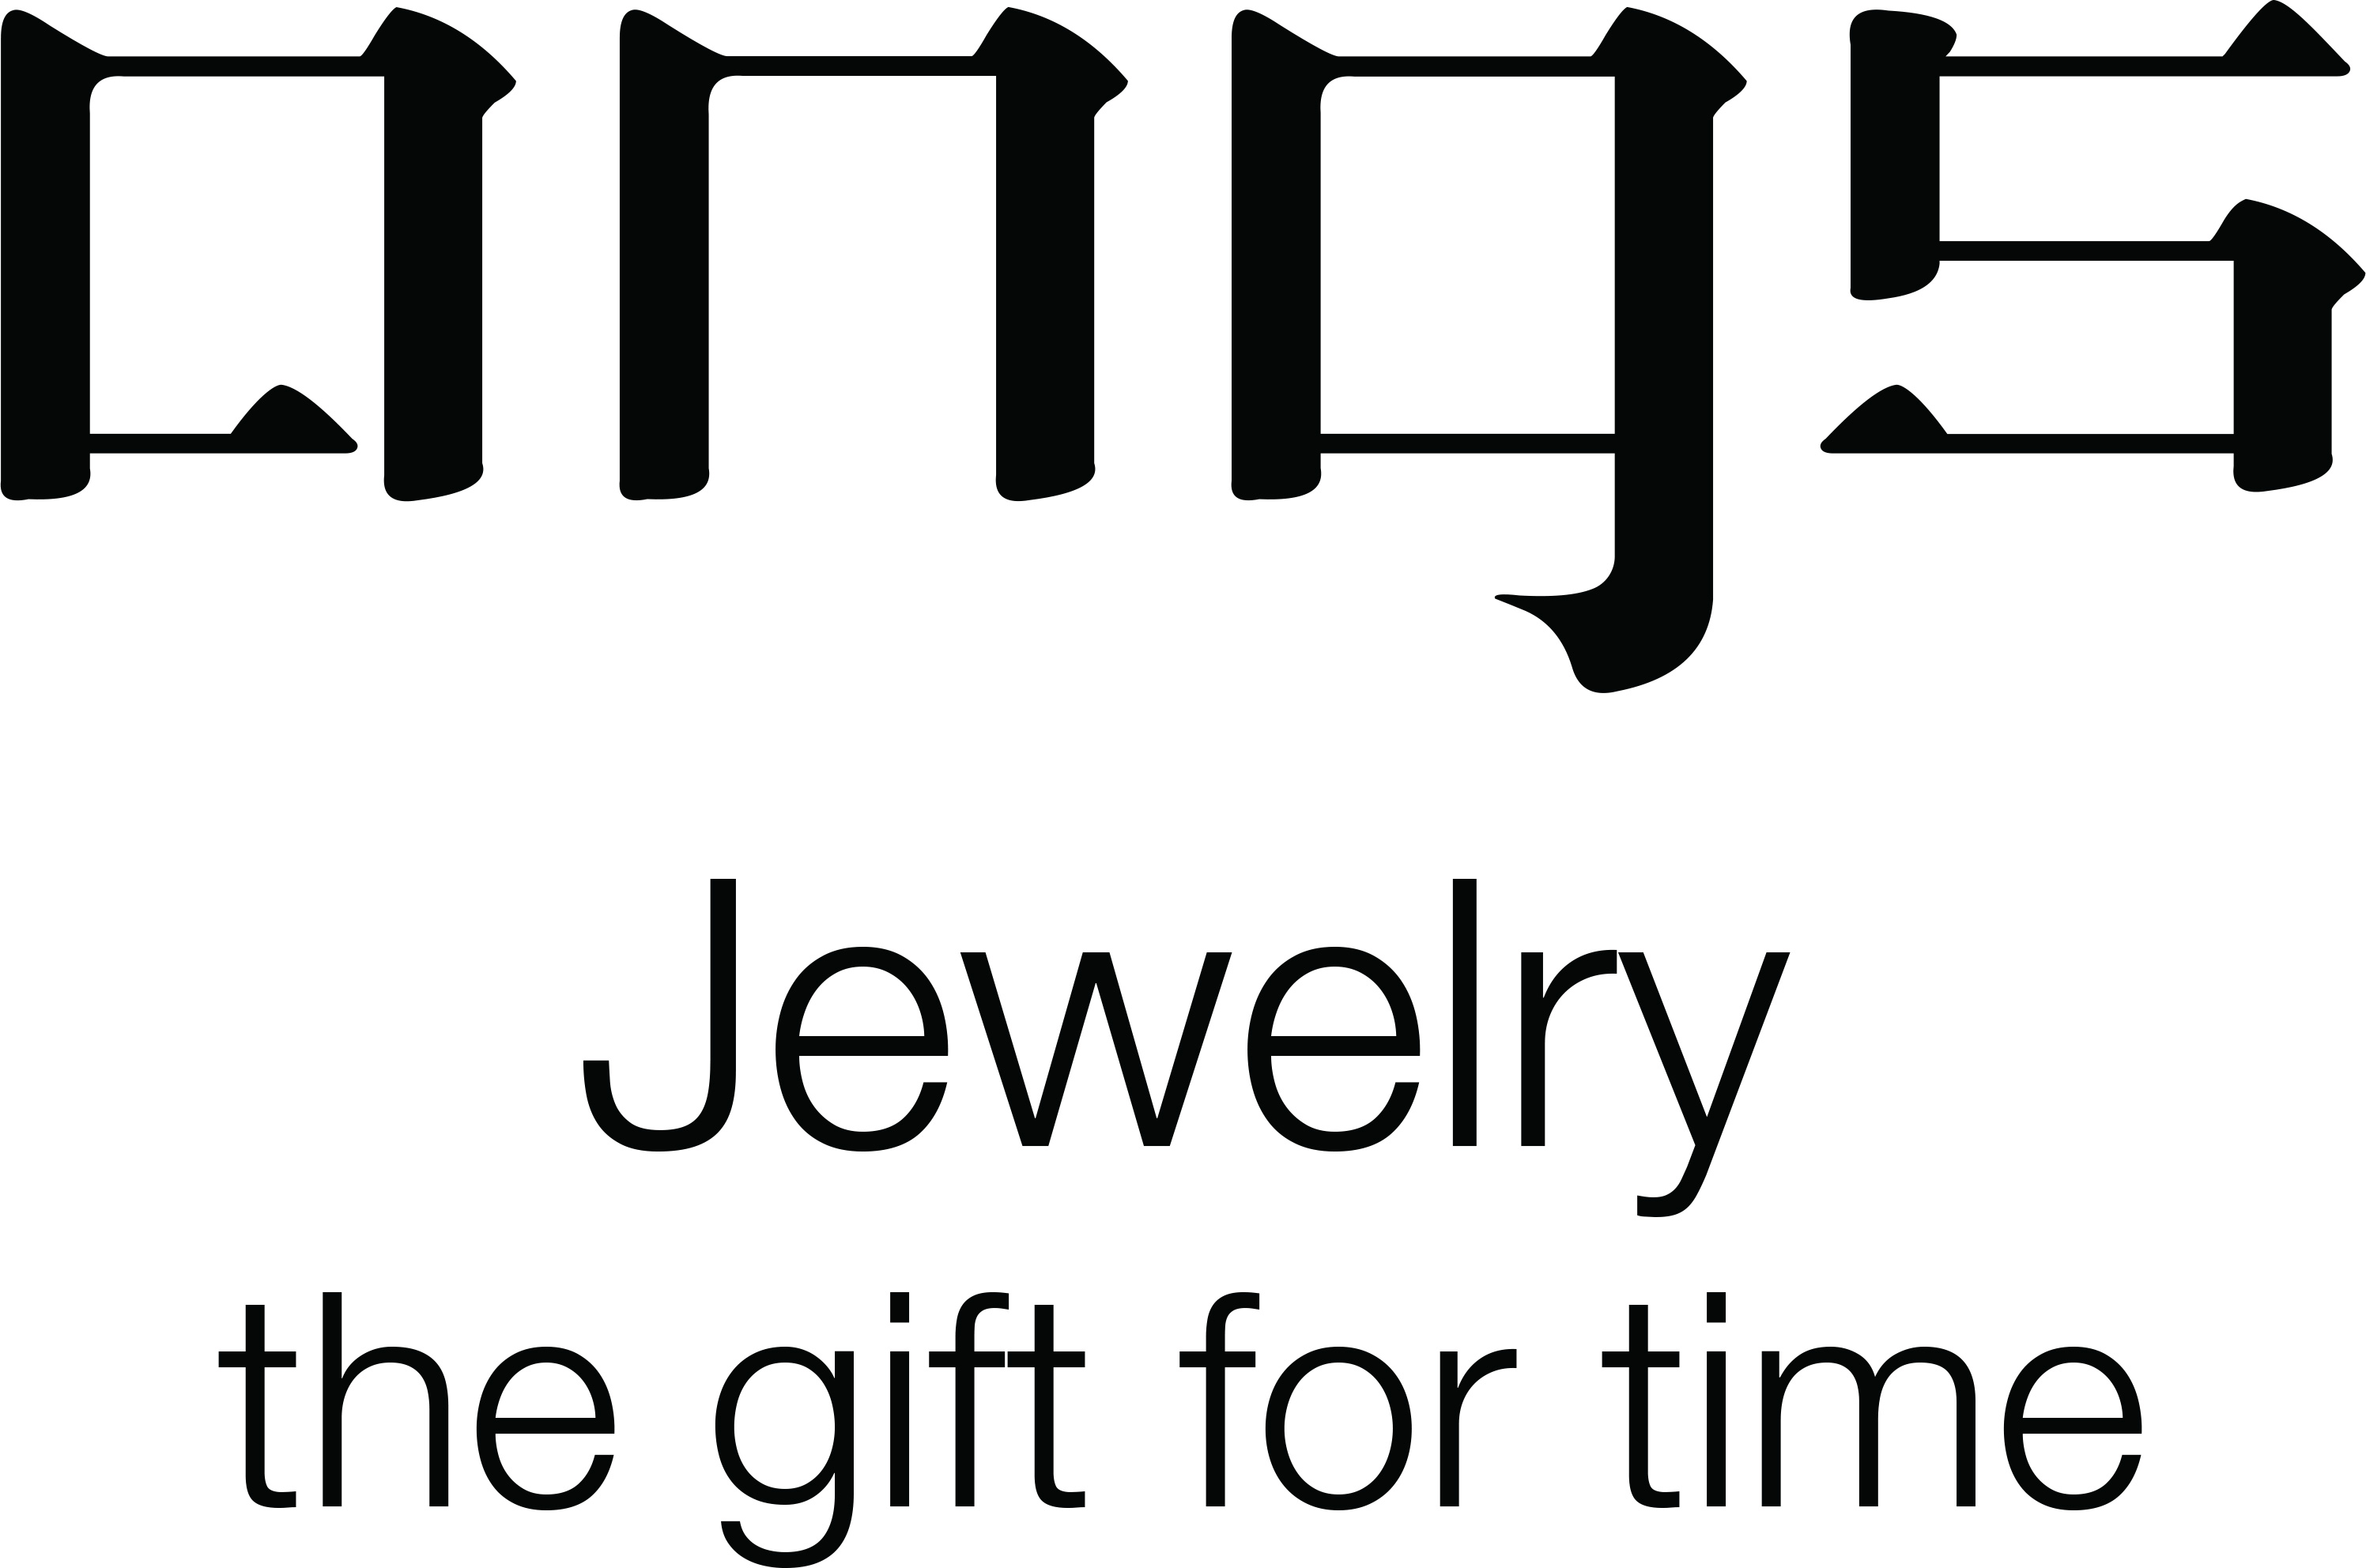 angs-Jewelry-the-gift-for-time-无边